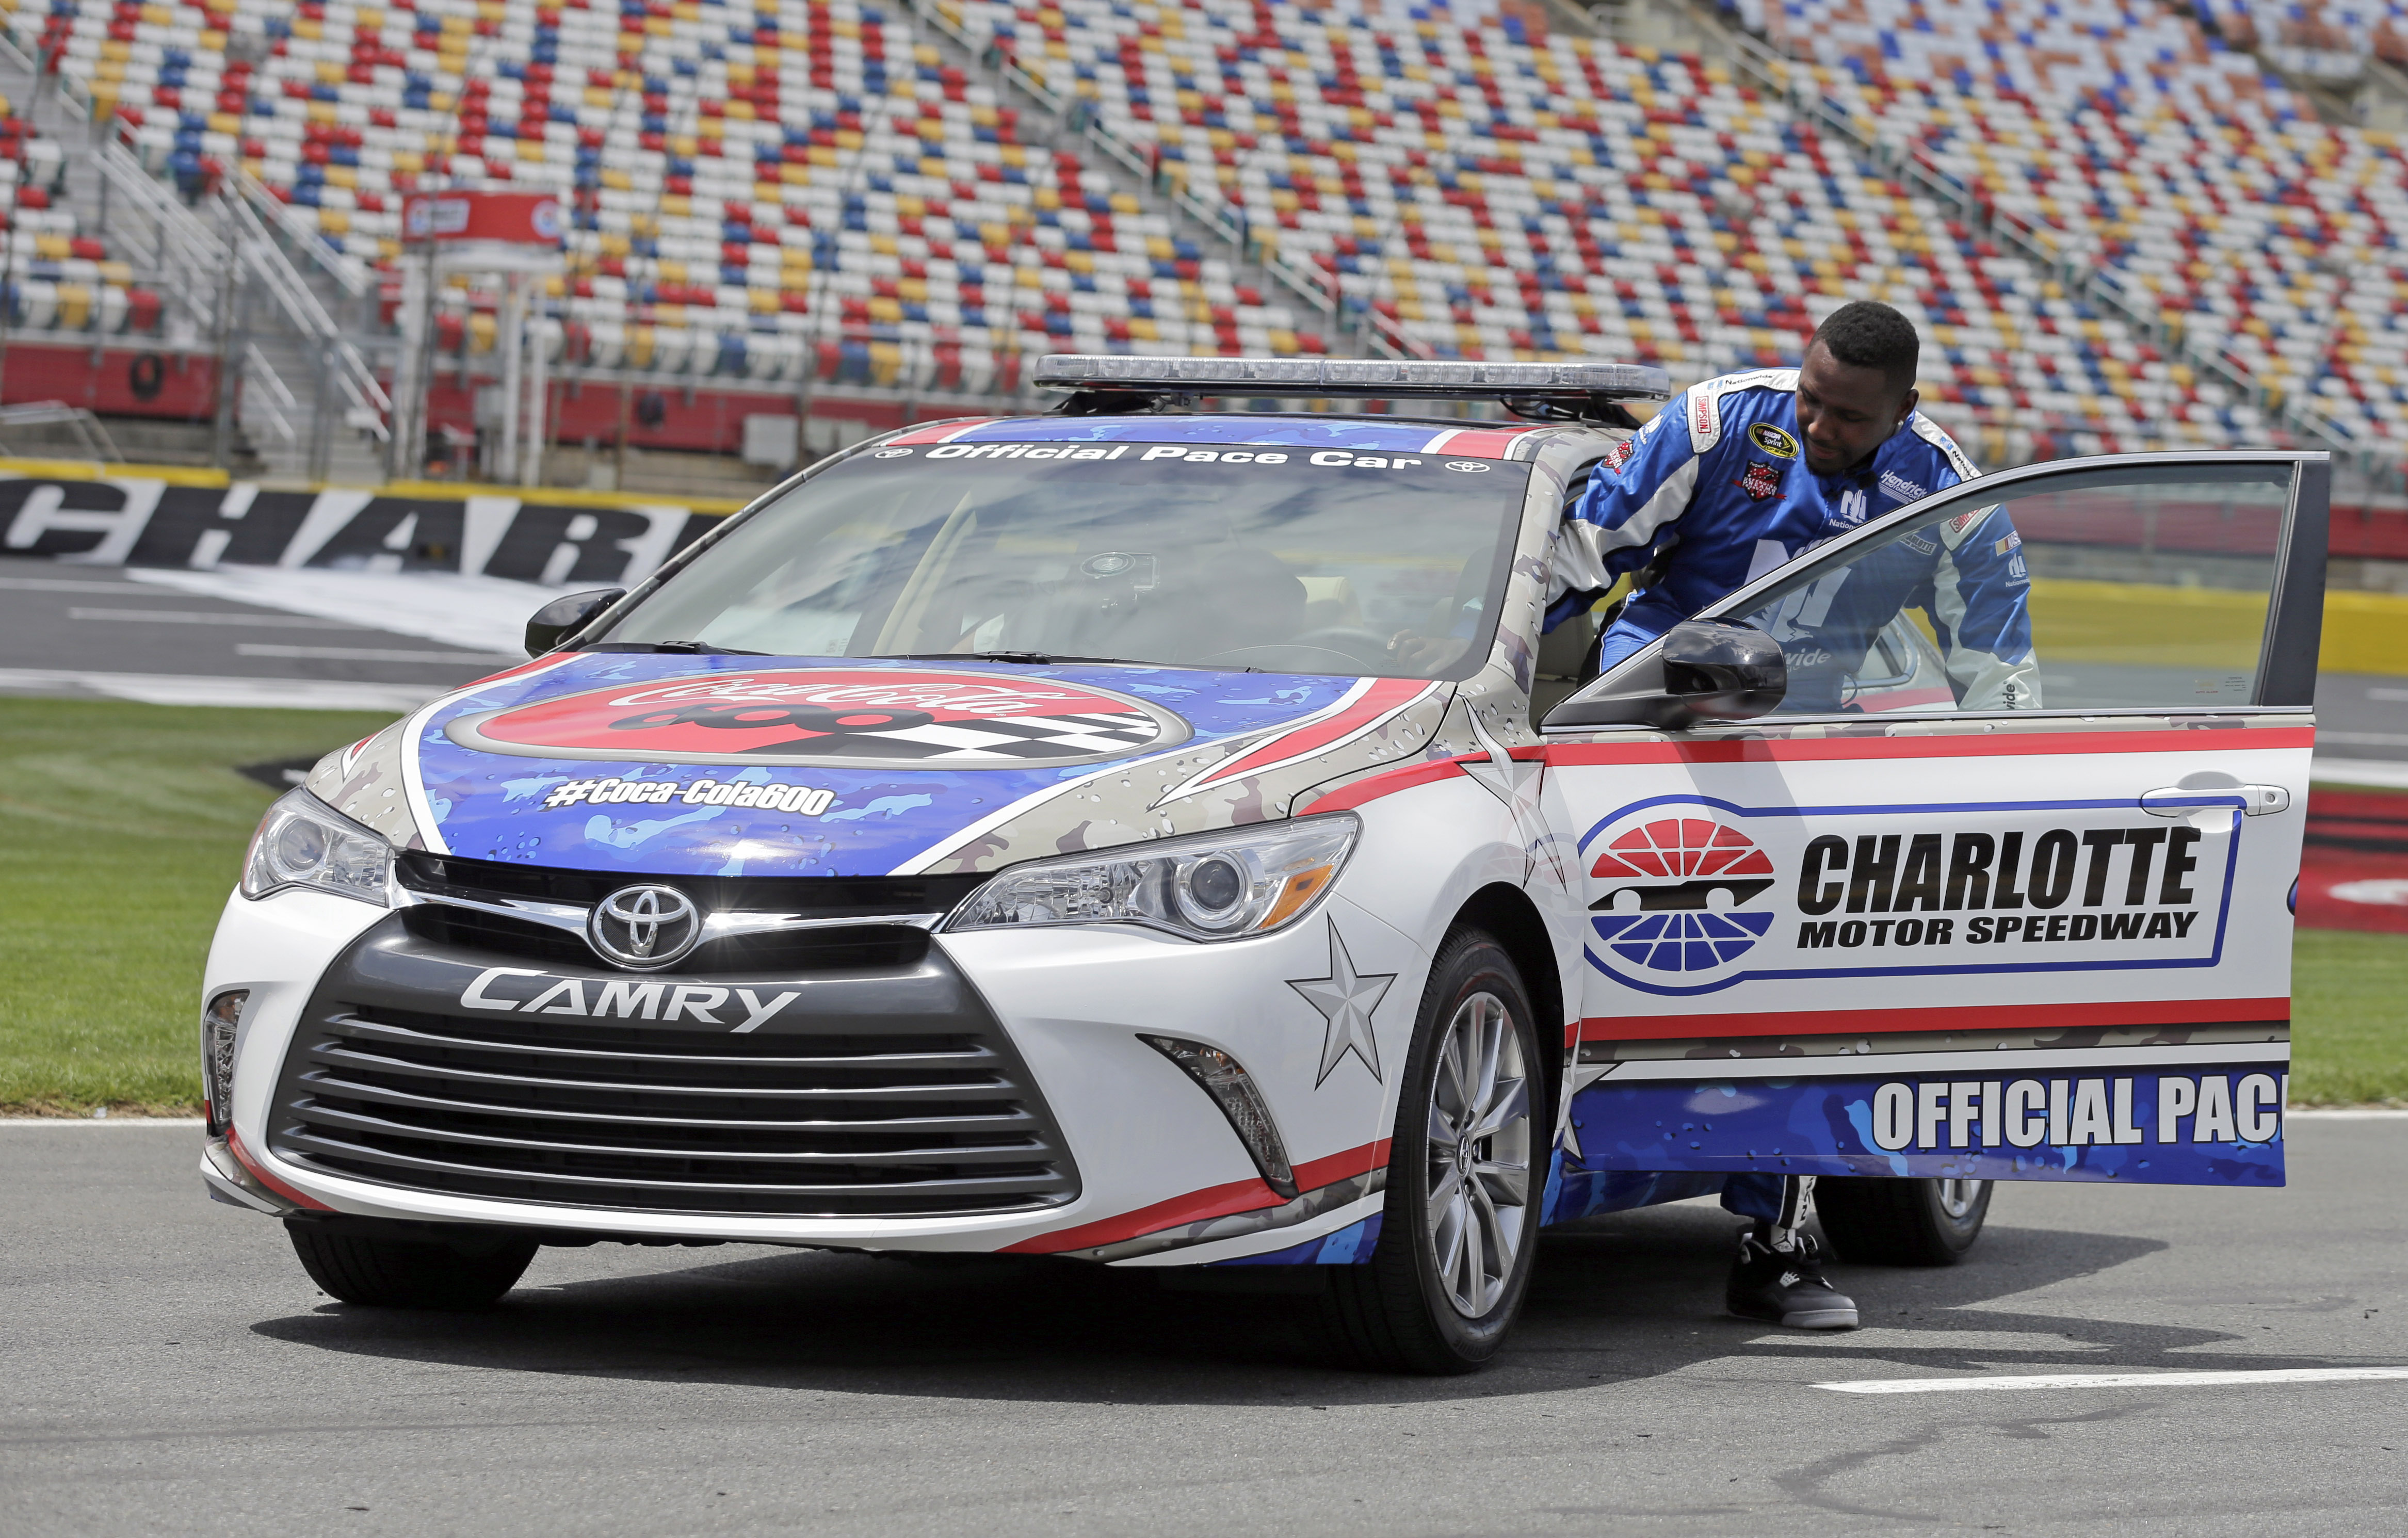 Carolina Panthers linebacker Thomas Davis climbs into the pace car at Charlotte Motor Speedway for his certification laps during a news conference in Concord, N.C., Tuesday, May 19, 2015. Davis, the NFL's Man of the Year, has been selected to be the honor